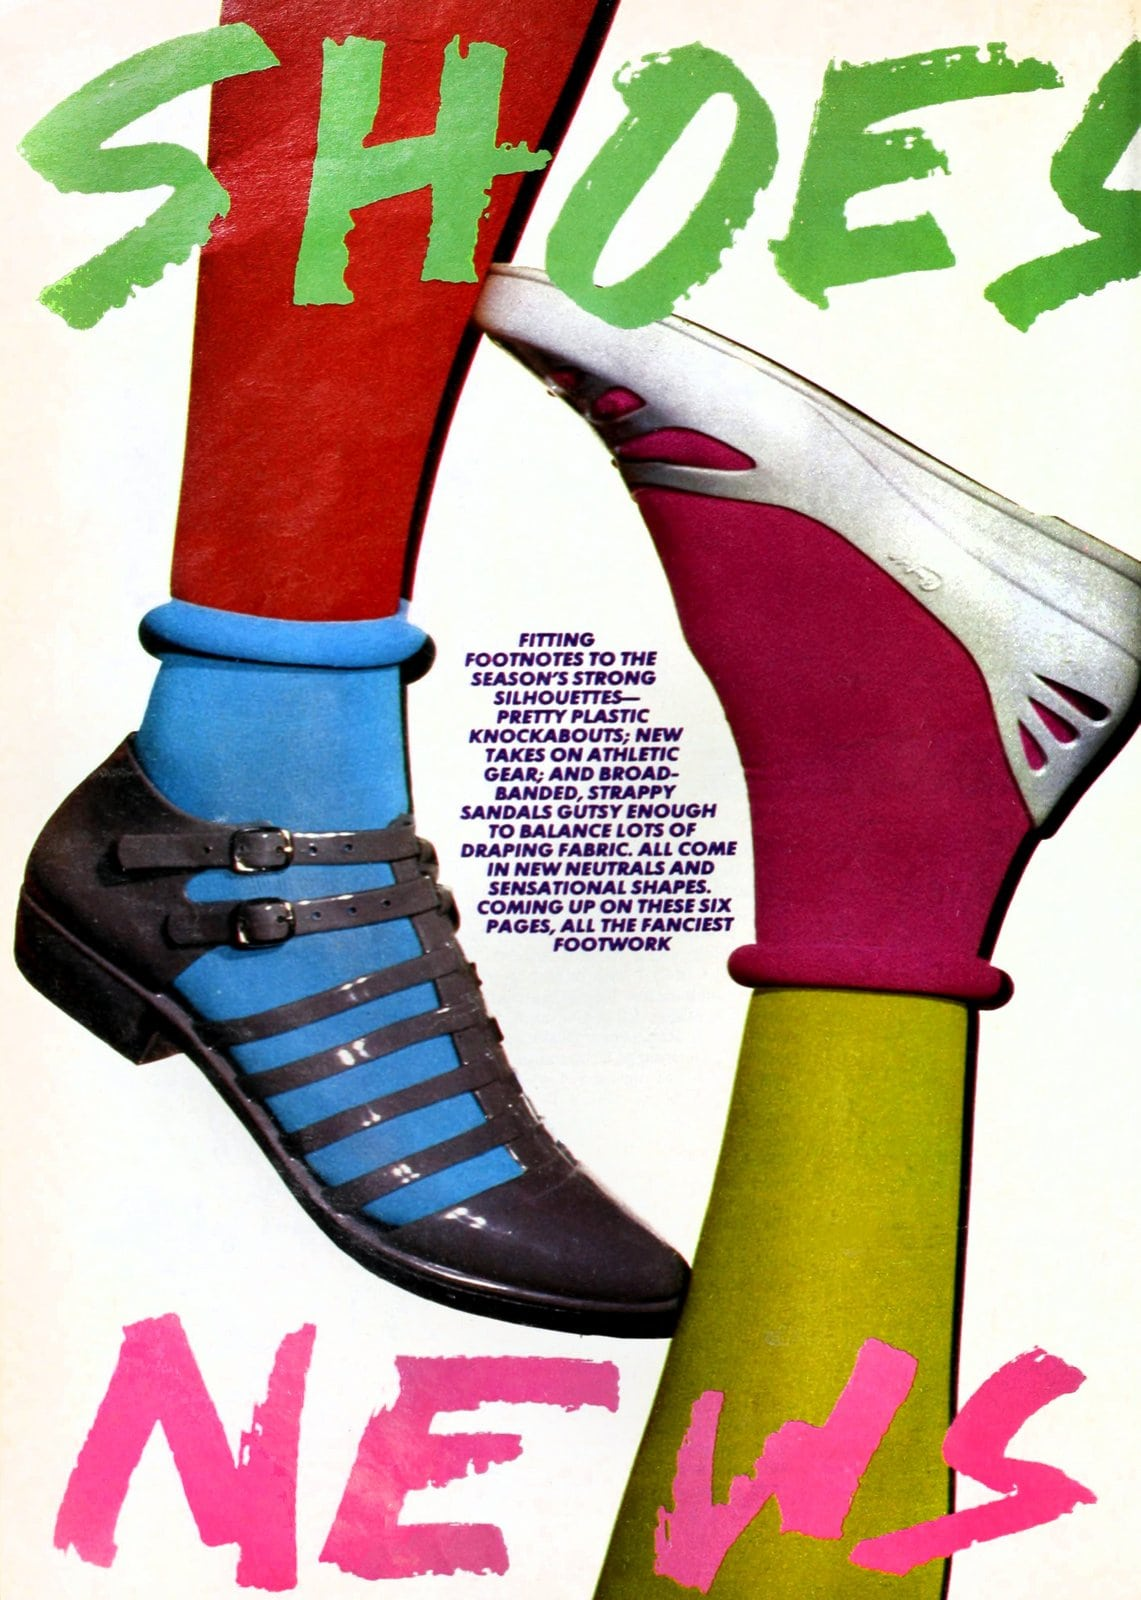 Retro 80s jelly sandals and ballet flats (1984)